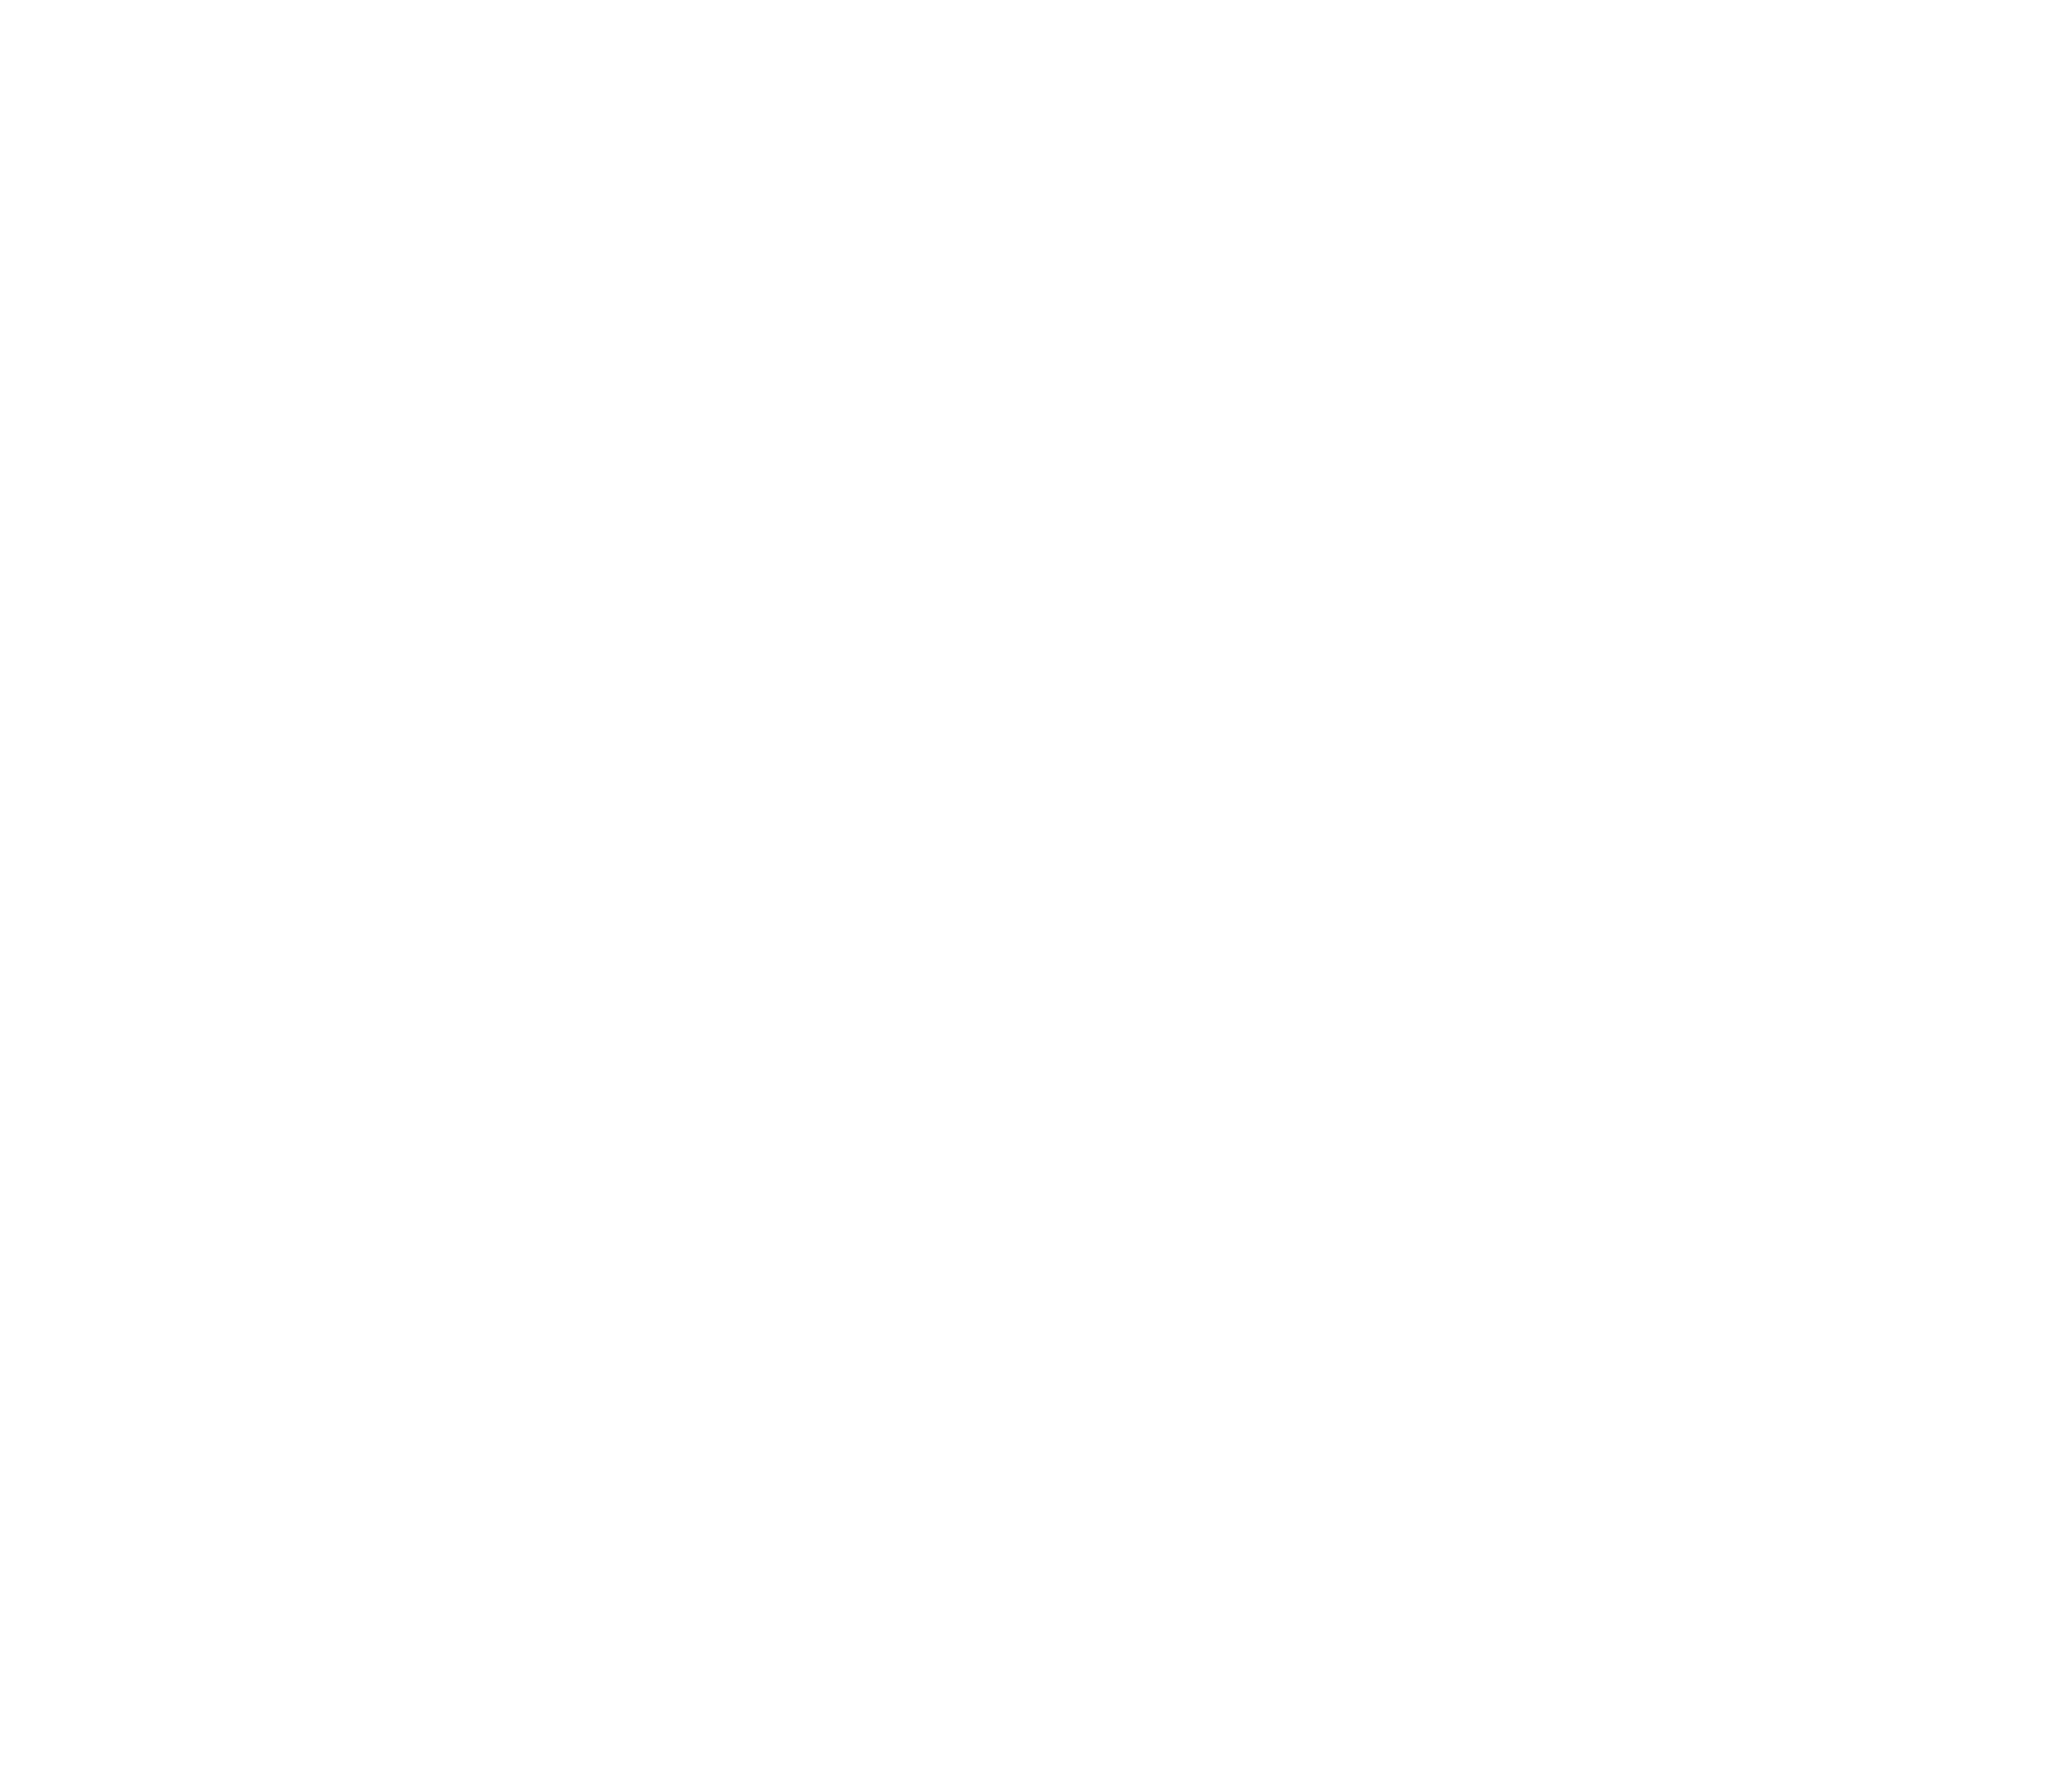 Castell group